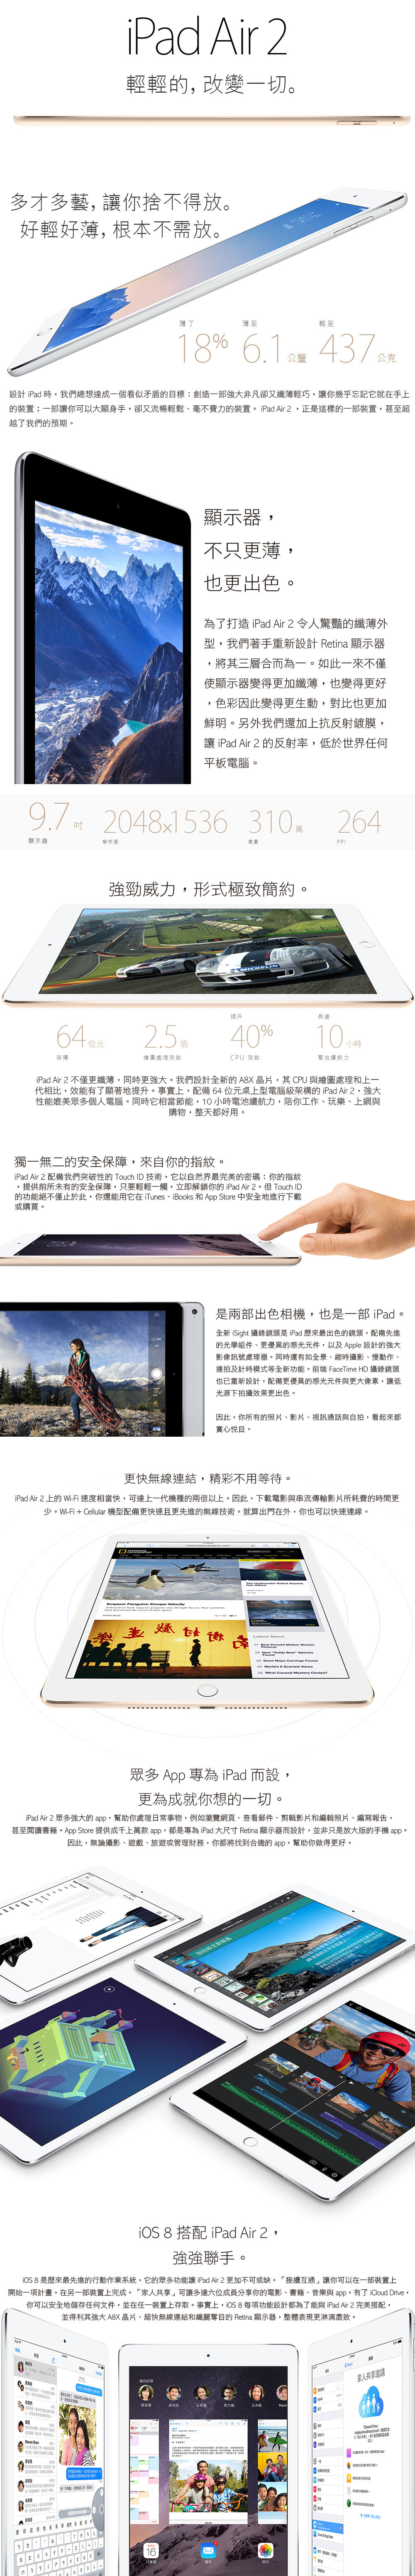 APPLE蘋果 iPad Air2  (16G) LTE版 送保貼+筆 蘋果 Apple iPad Air2 ipad LTE 16GB MGGX2TA/A MH1C2TA/A MGH72TA/A